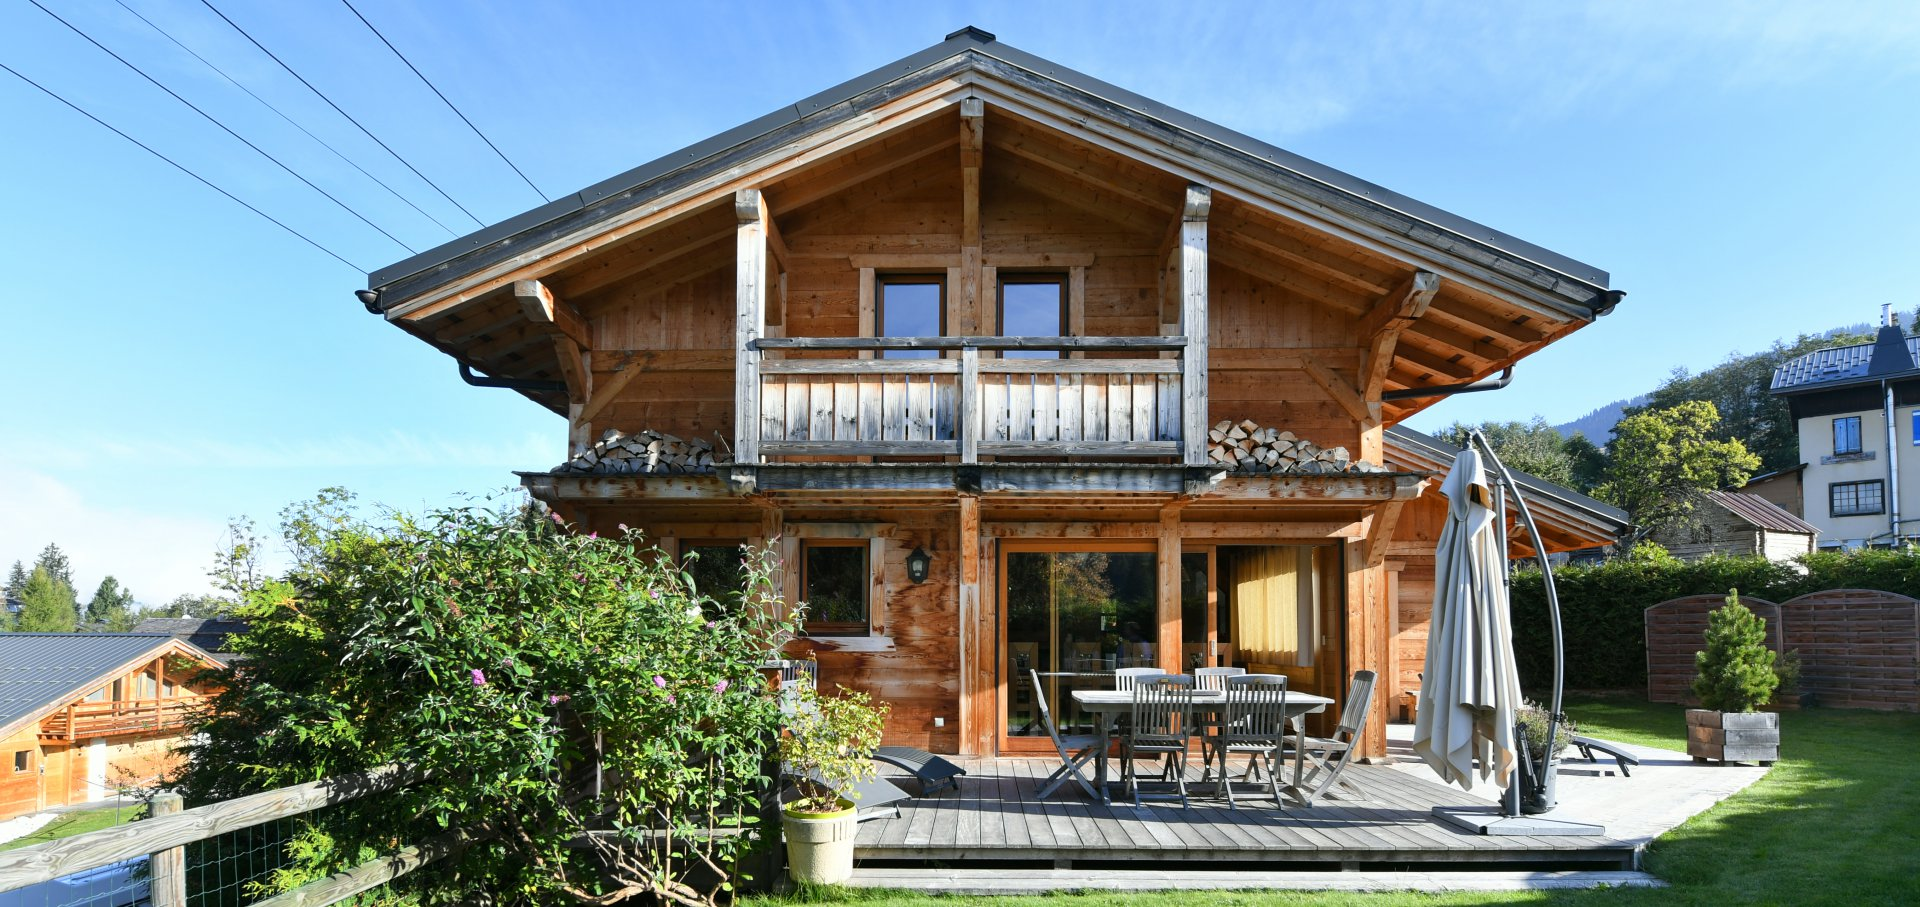 Chalet affitto affitto pretoro chalet abruzzo with chalet for Affitto chalet cortina